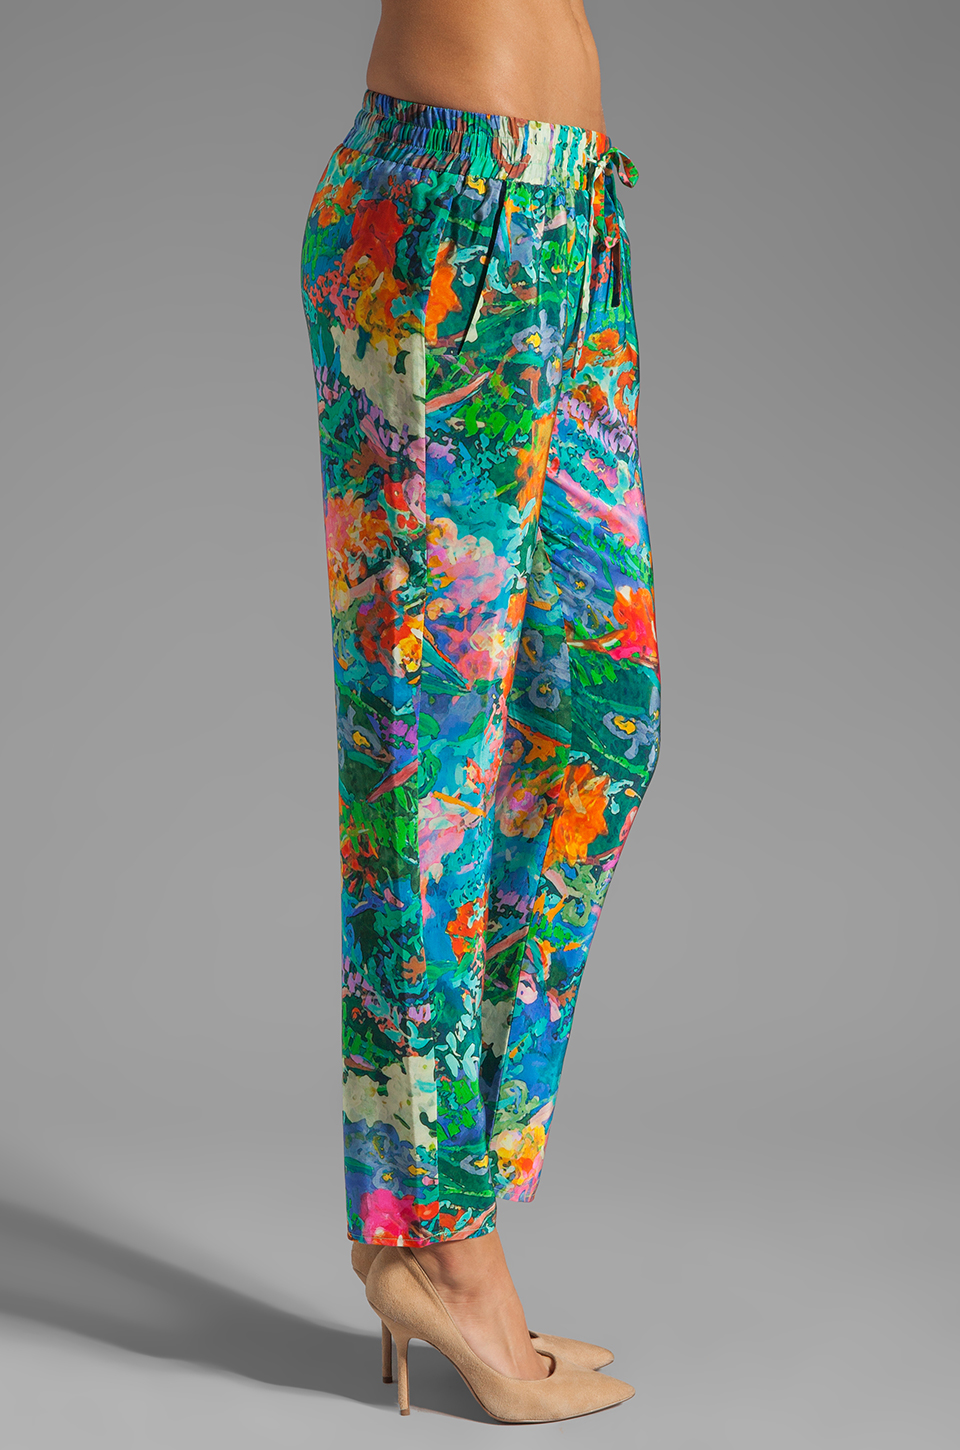 Amanda Uprichard Silk Tribeca Pants in Aqua Splash